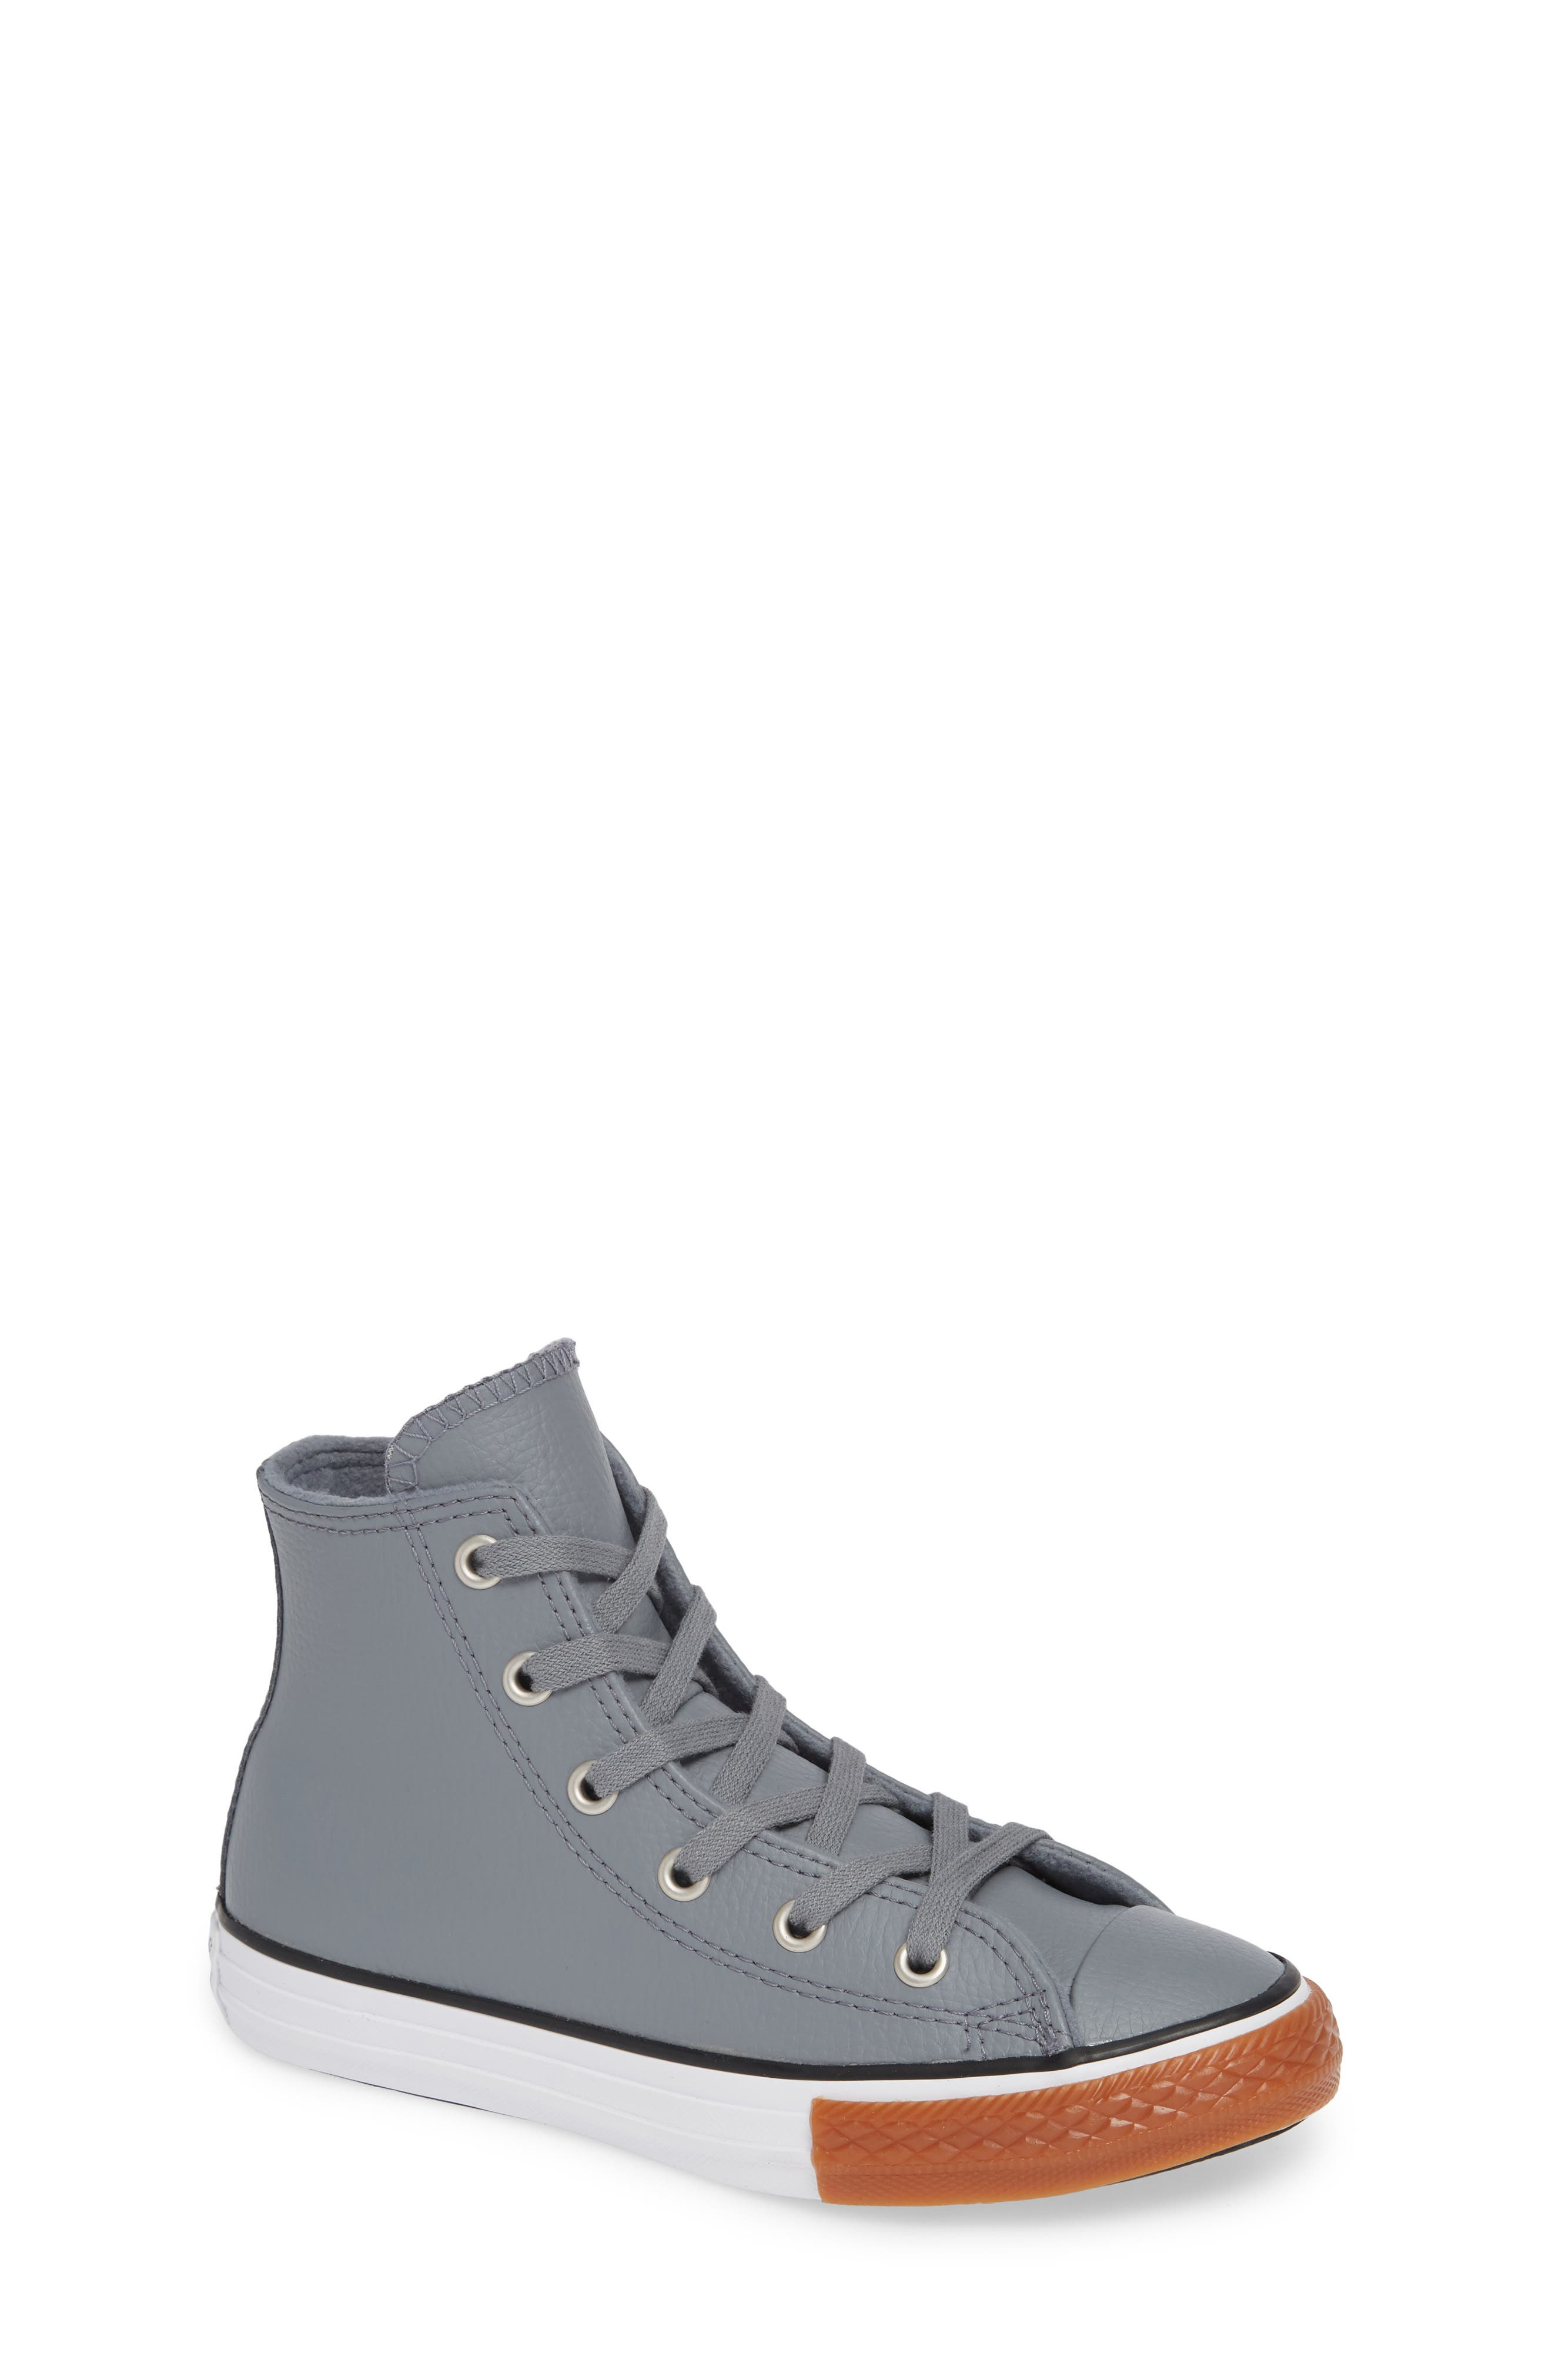 Chuck Taylor<sup>®</sup> All Star<sup>®</sup> No Gum In Class Leather High Top Sneaker,                         Main,                         color, COOL GREY